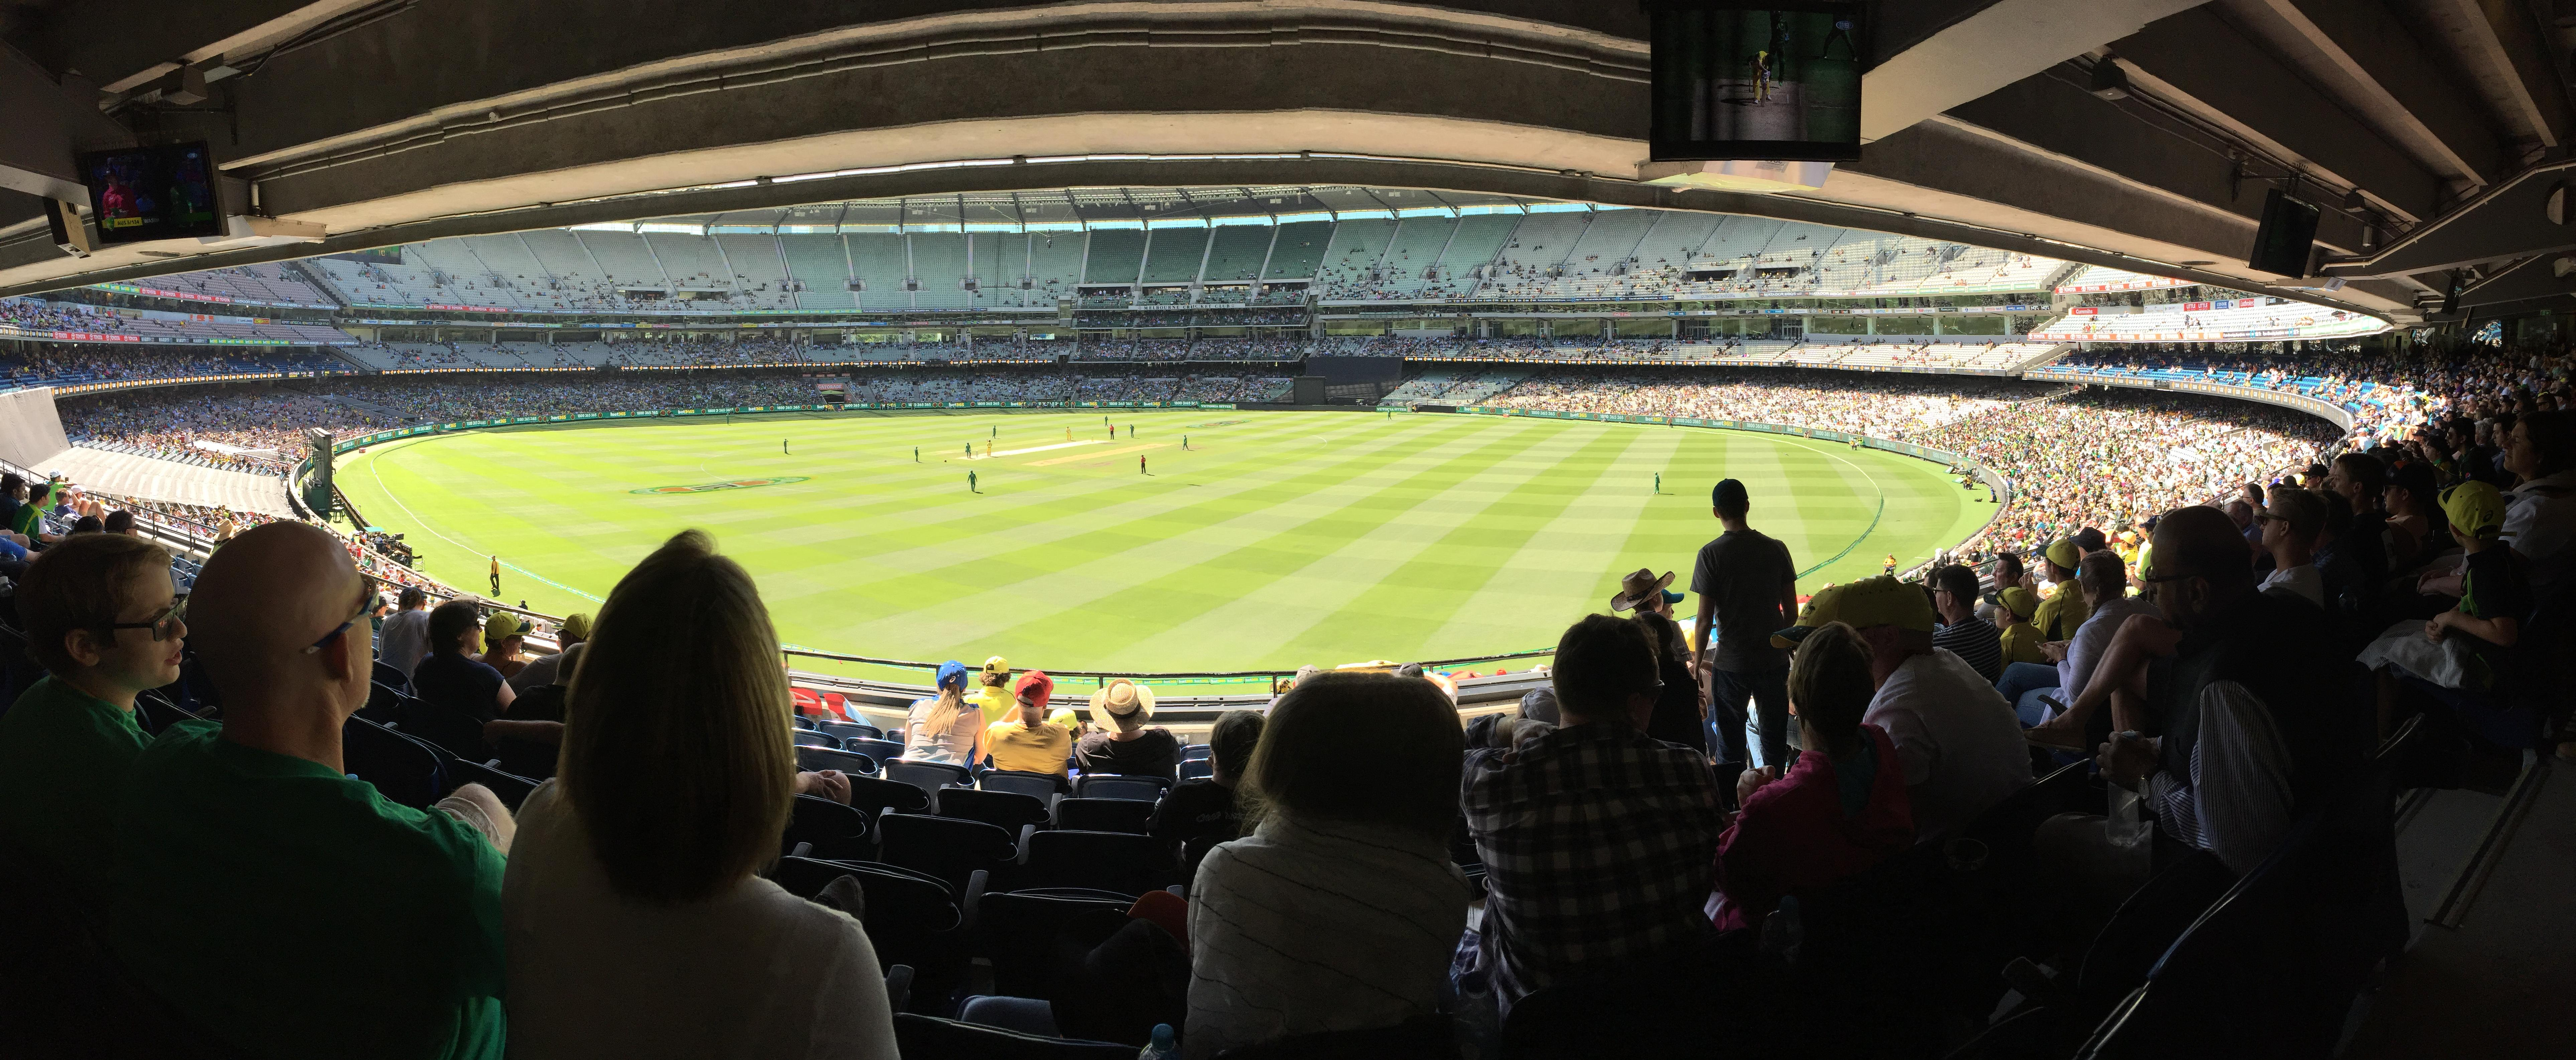 Melbourne Cricket Ground Section N13 Row J Seat 18